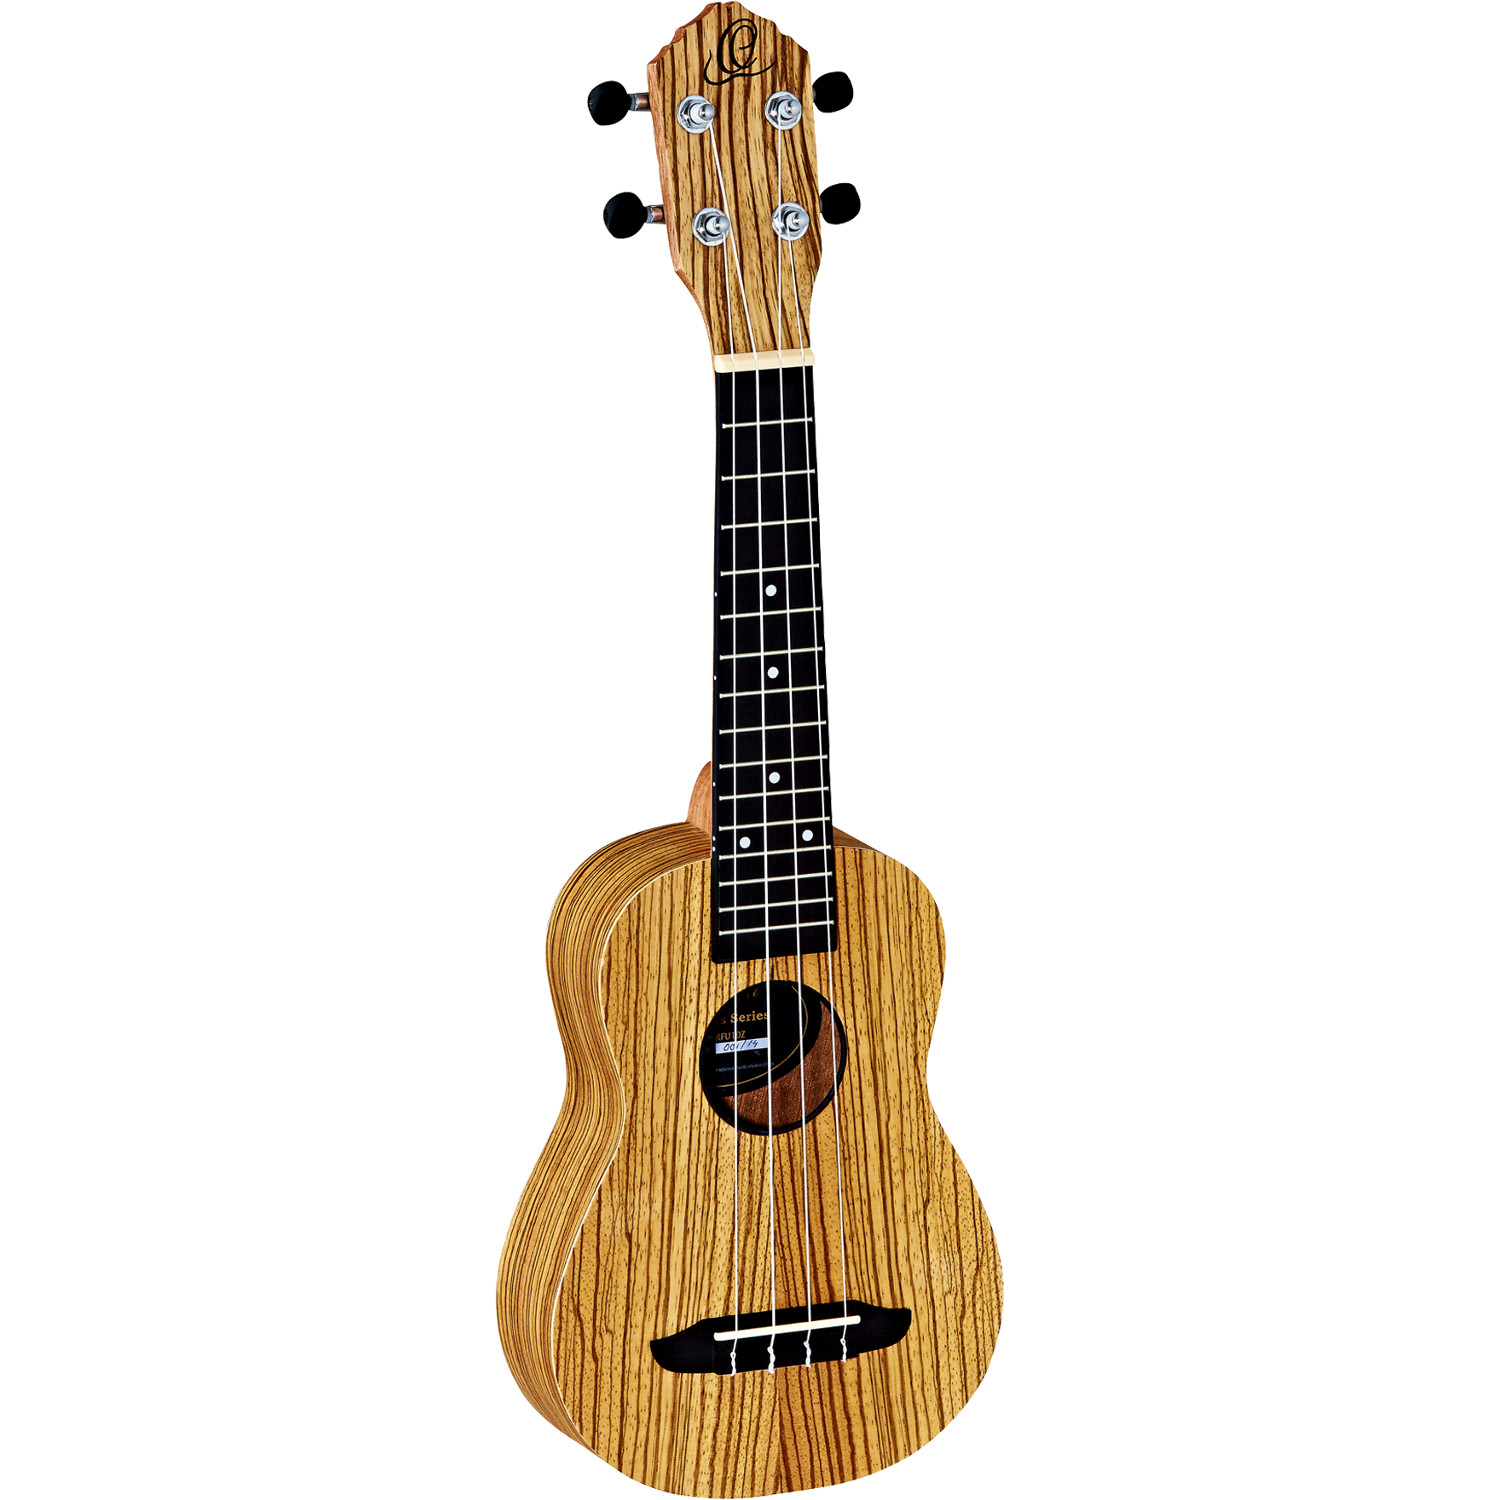 Ortega Friends Series RFU10Z soprano ukulele, natural